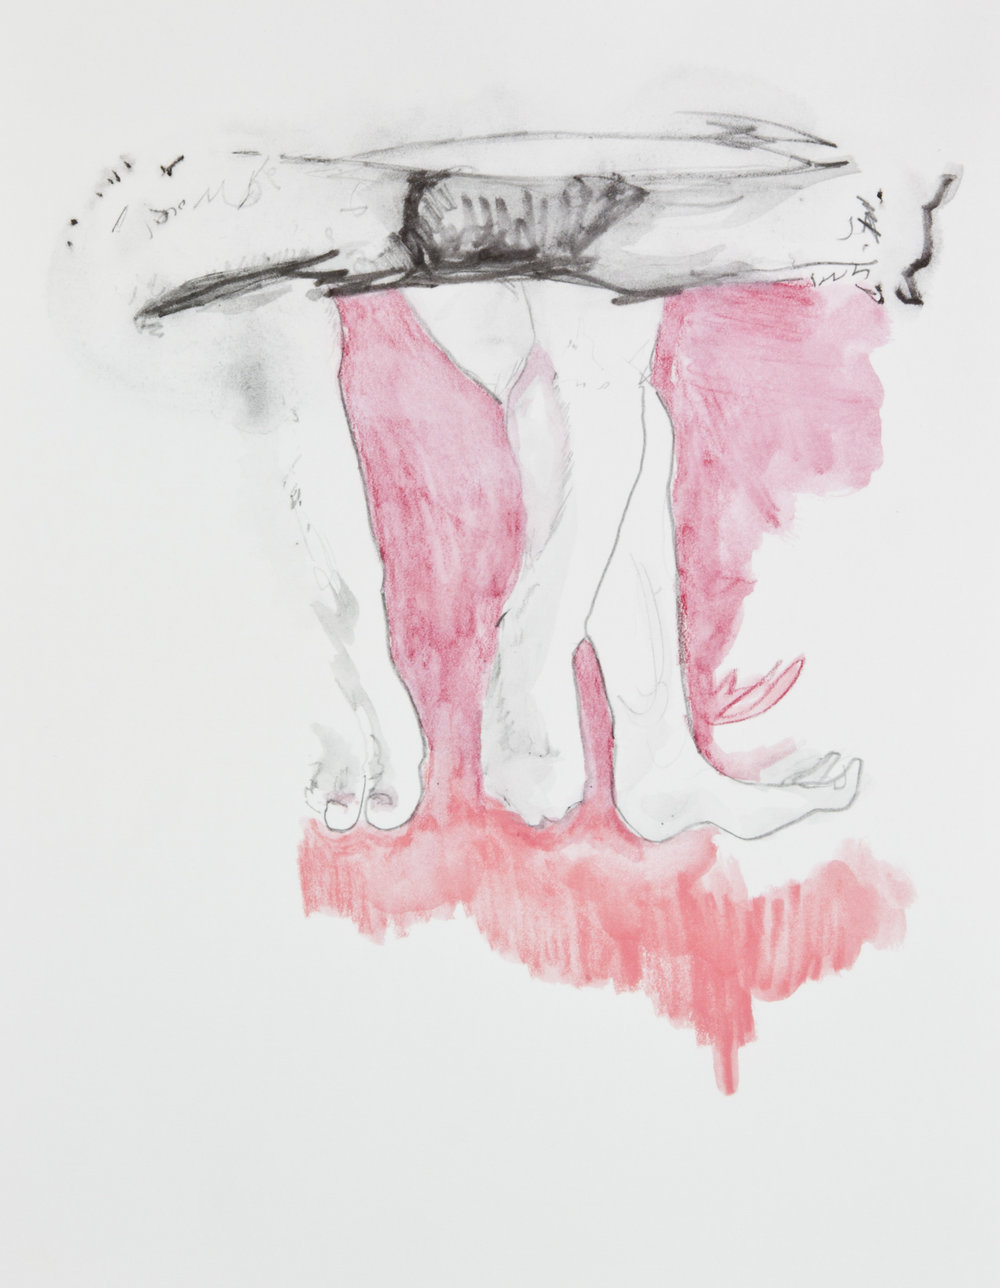 We Dangle In Place, 2013, graphite, crayon and watercolor pencil on paper, 11x14 inches